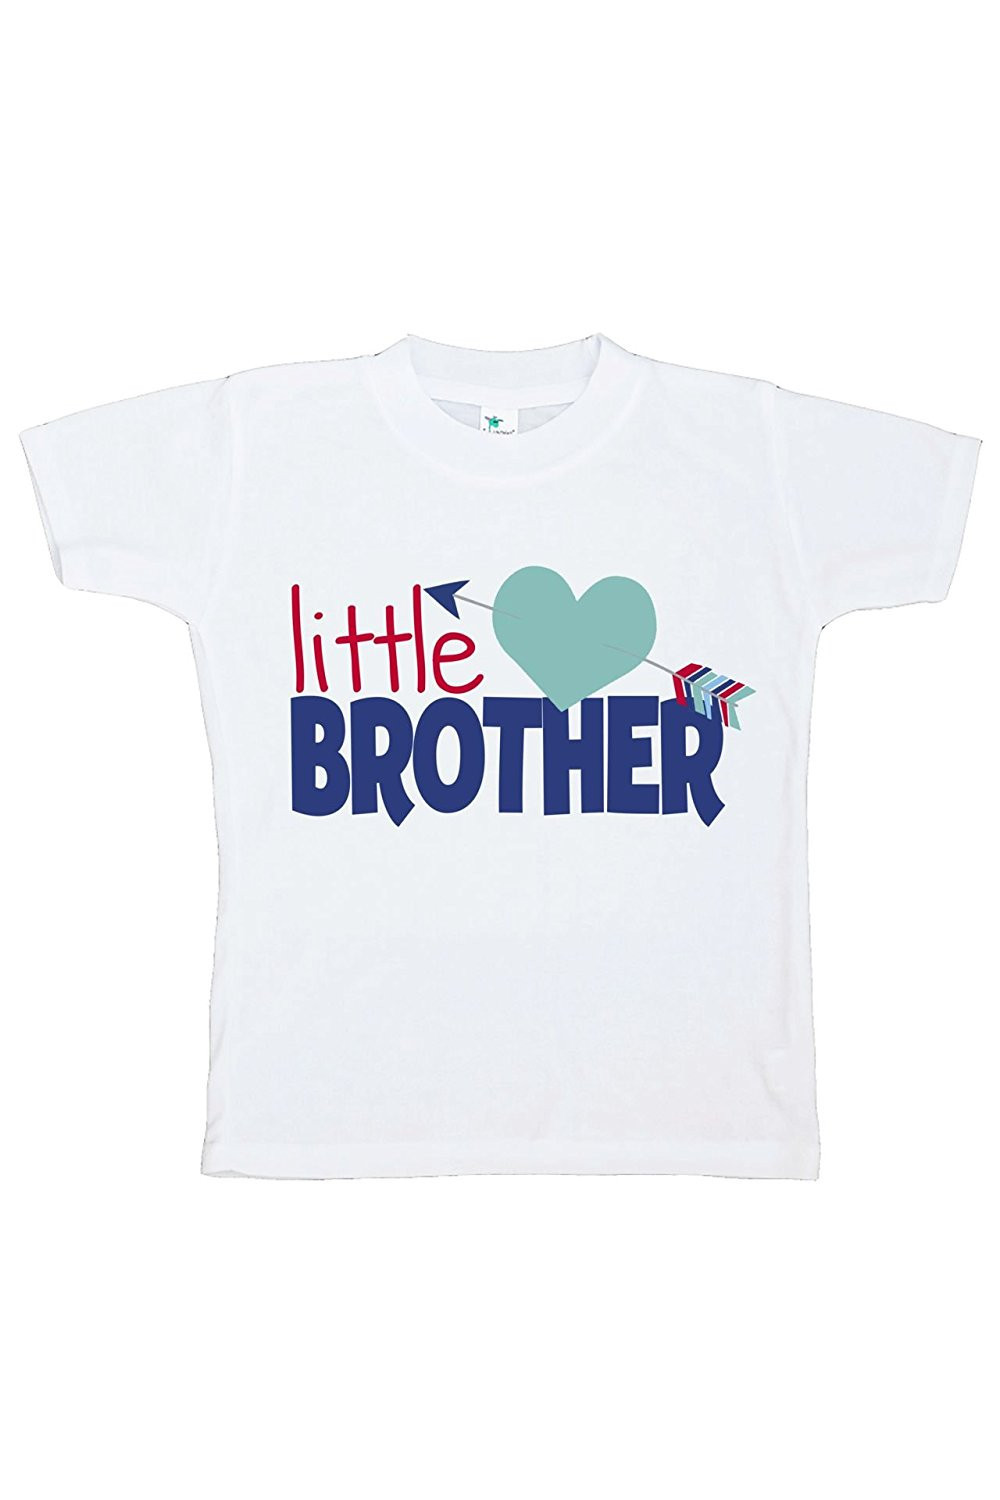 Custom Party Shop Boy's Little Brother Happy Valentine's Day T-shirt - Small Youth (6-8) T-shirt